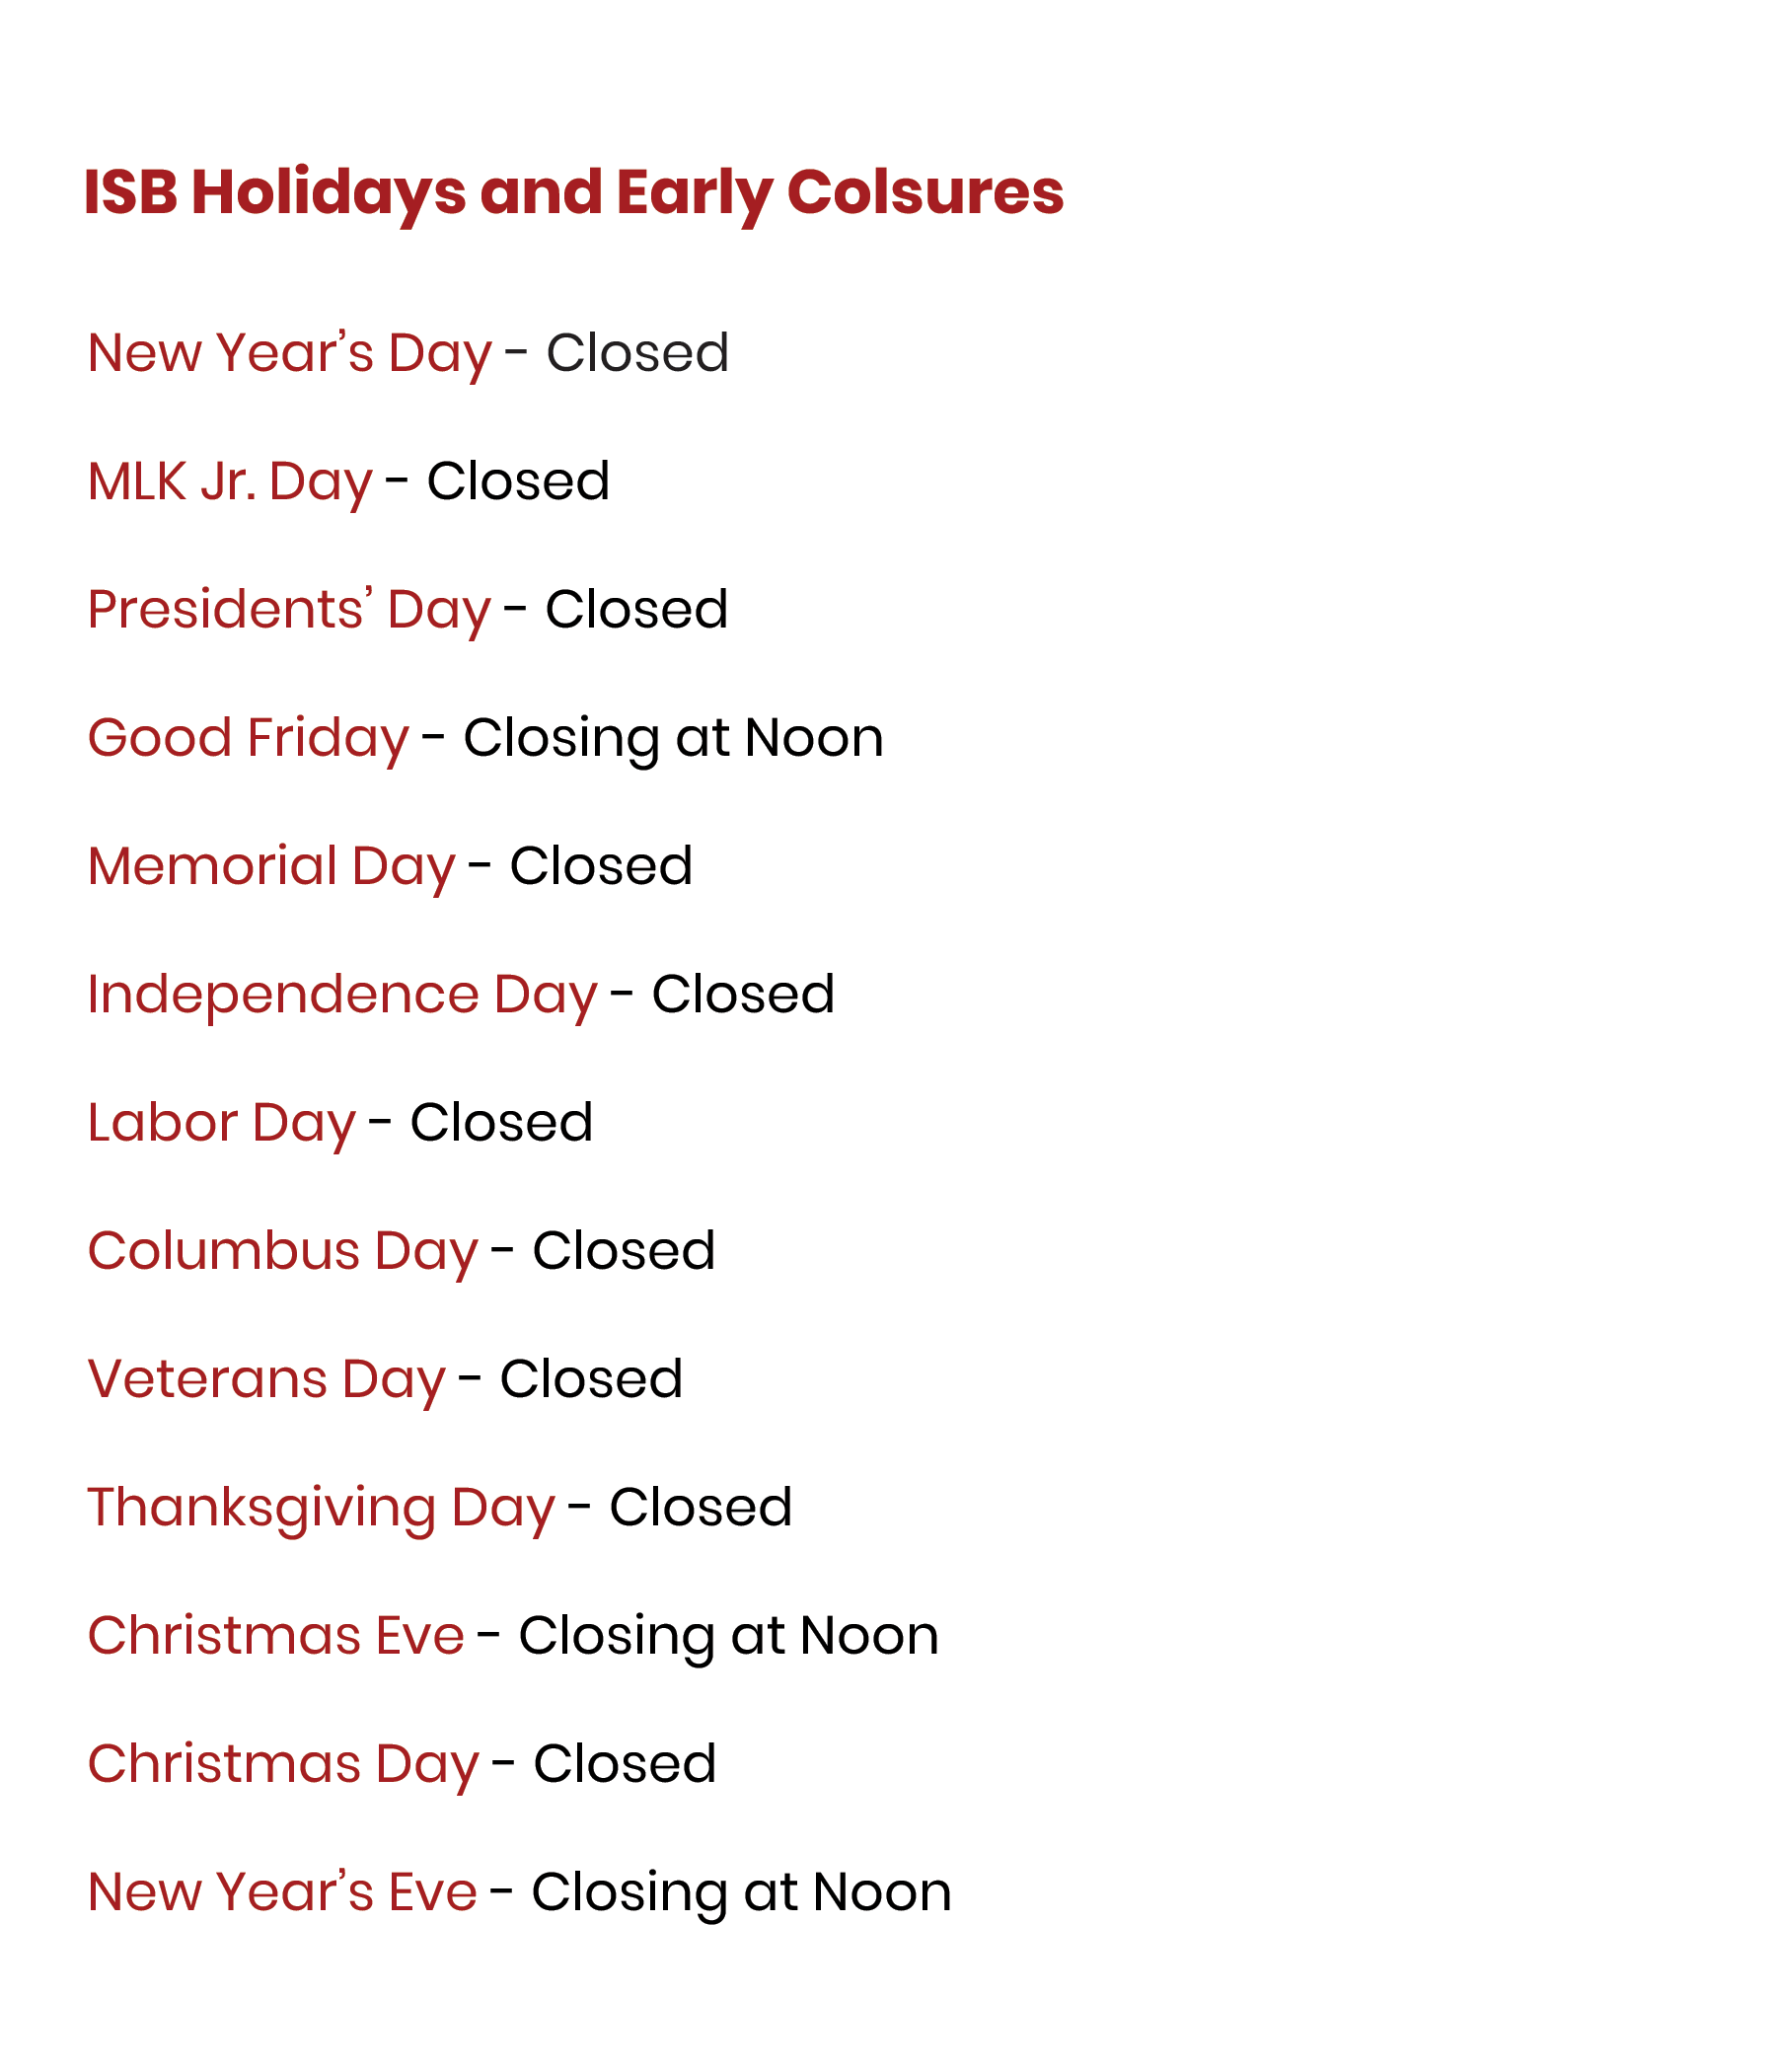 Bank Holidays and Early Closures